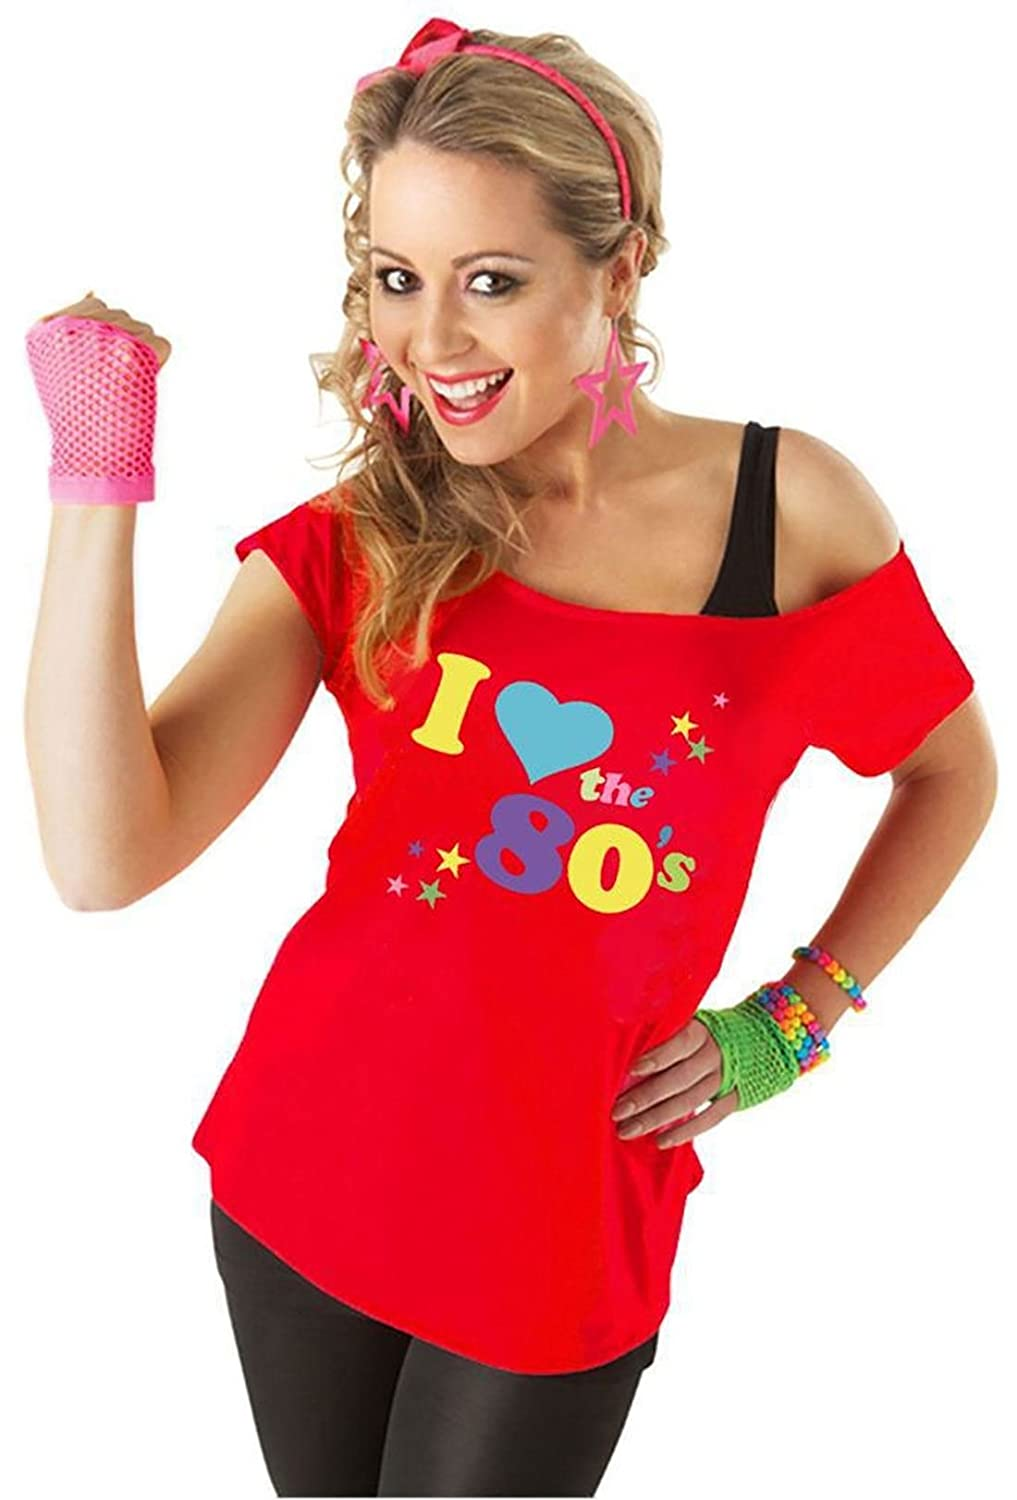 40a7060be3f41 RIDDLED WITH STYLE Womens I Love The 80s T Shirt   (RedI Love The 80s Tshirt   UK 10-12)  Amazon.ca  Clothing   Accessories